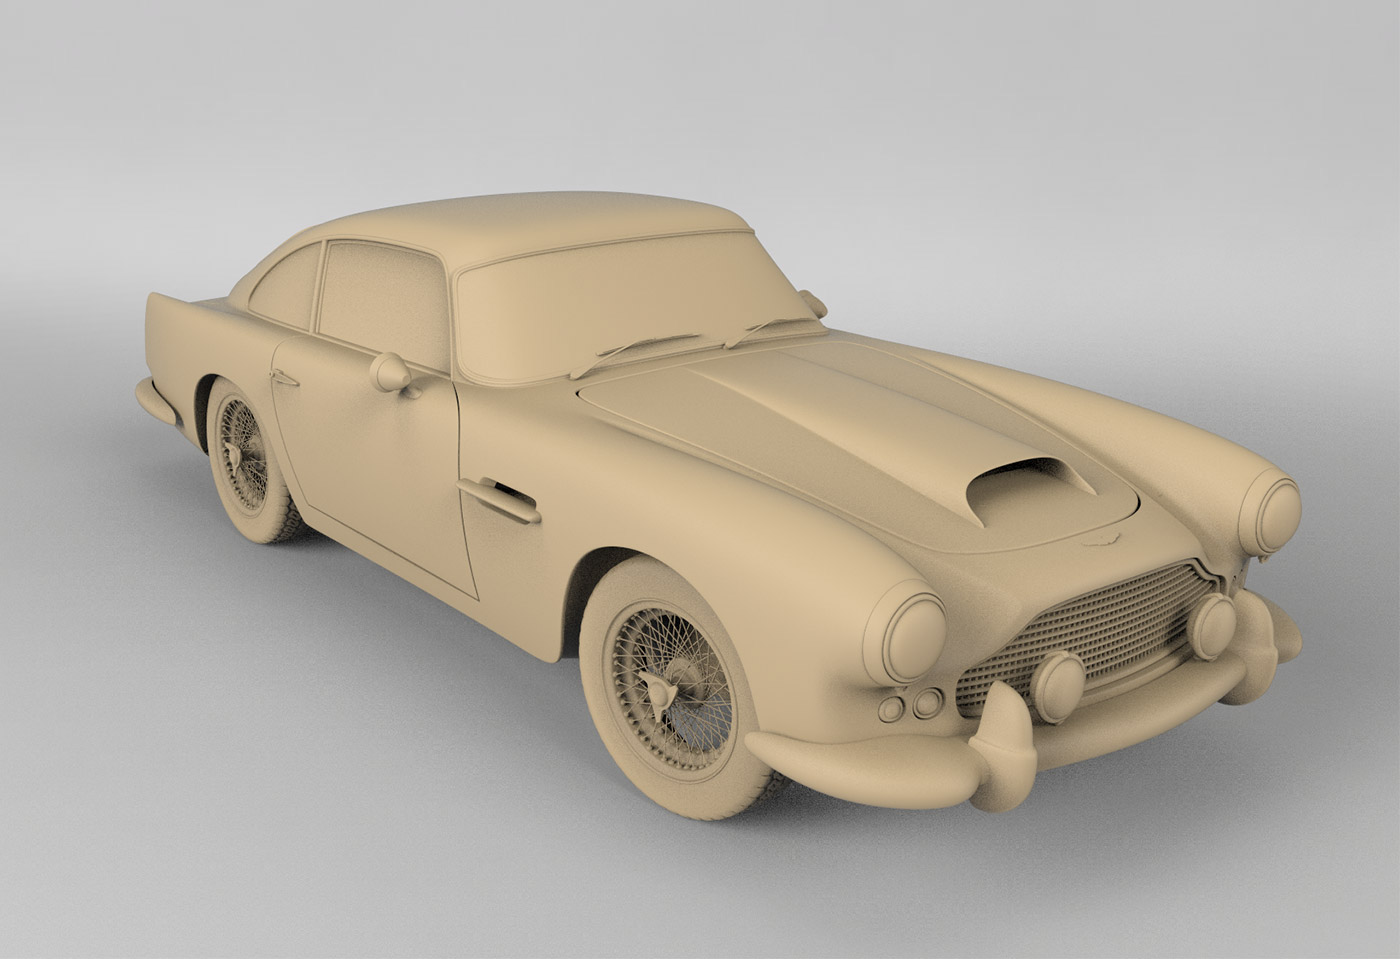 Behind The Scene Making A Classic Car Come To Life on Behance